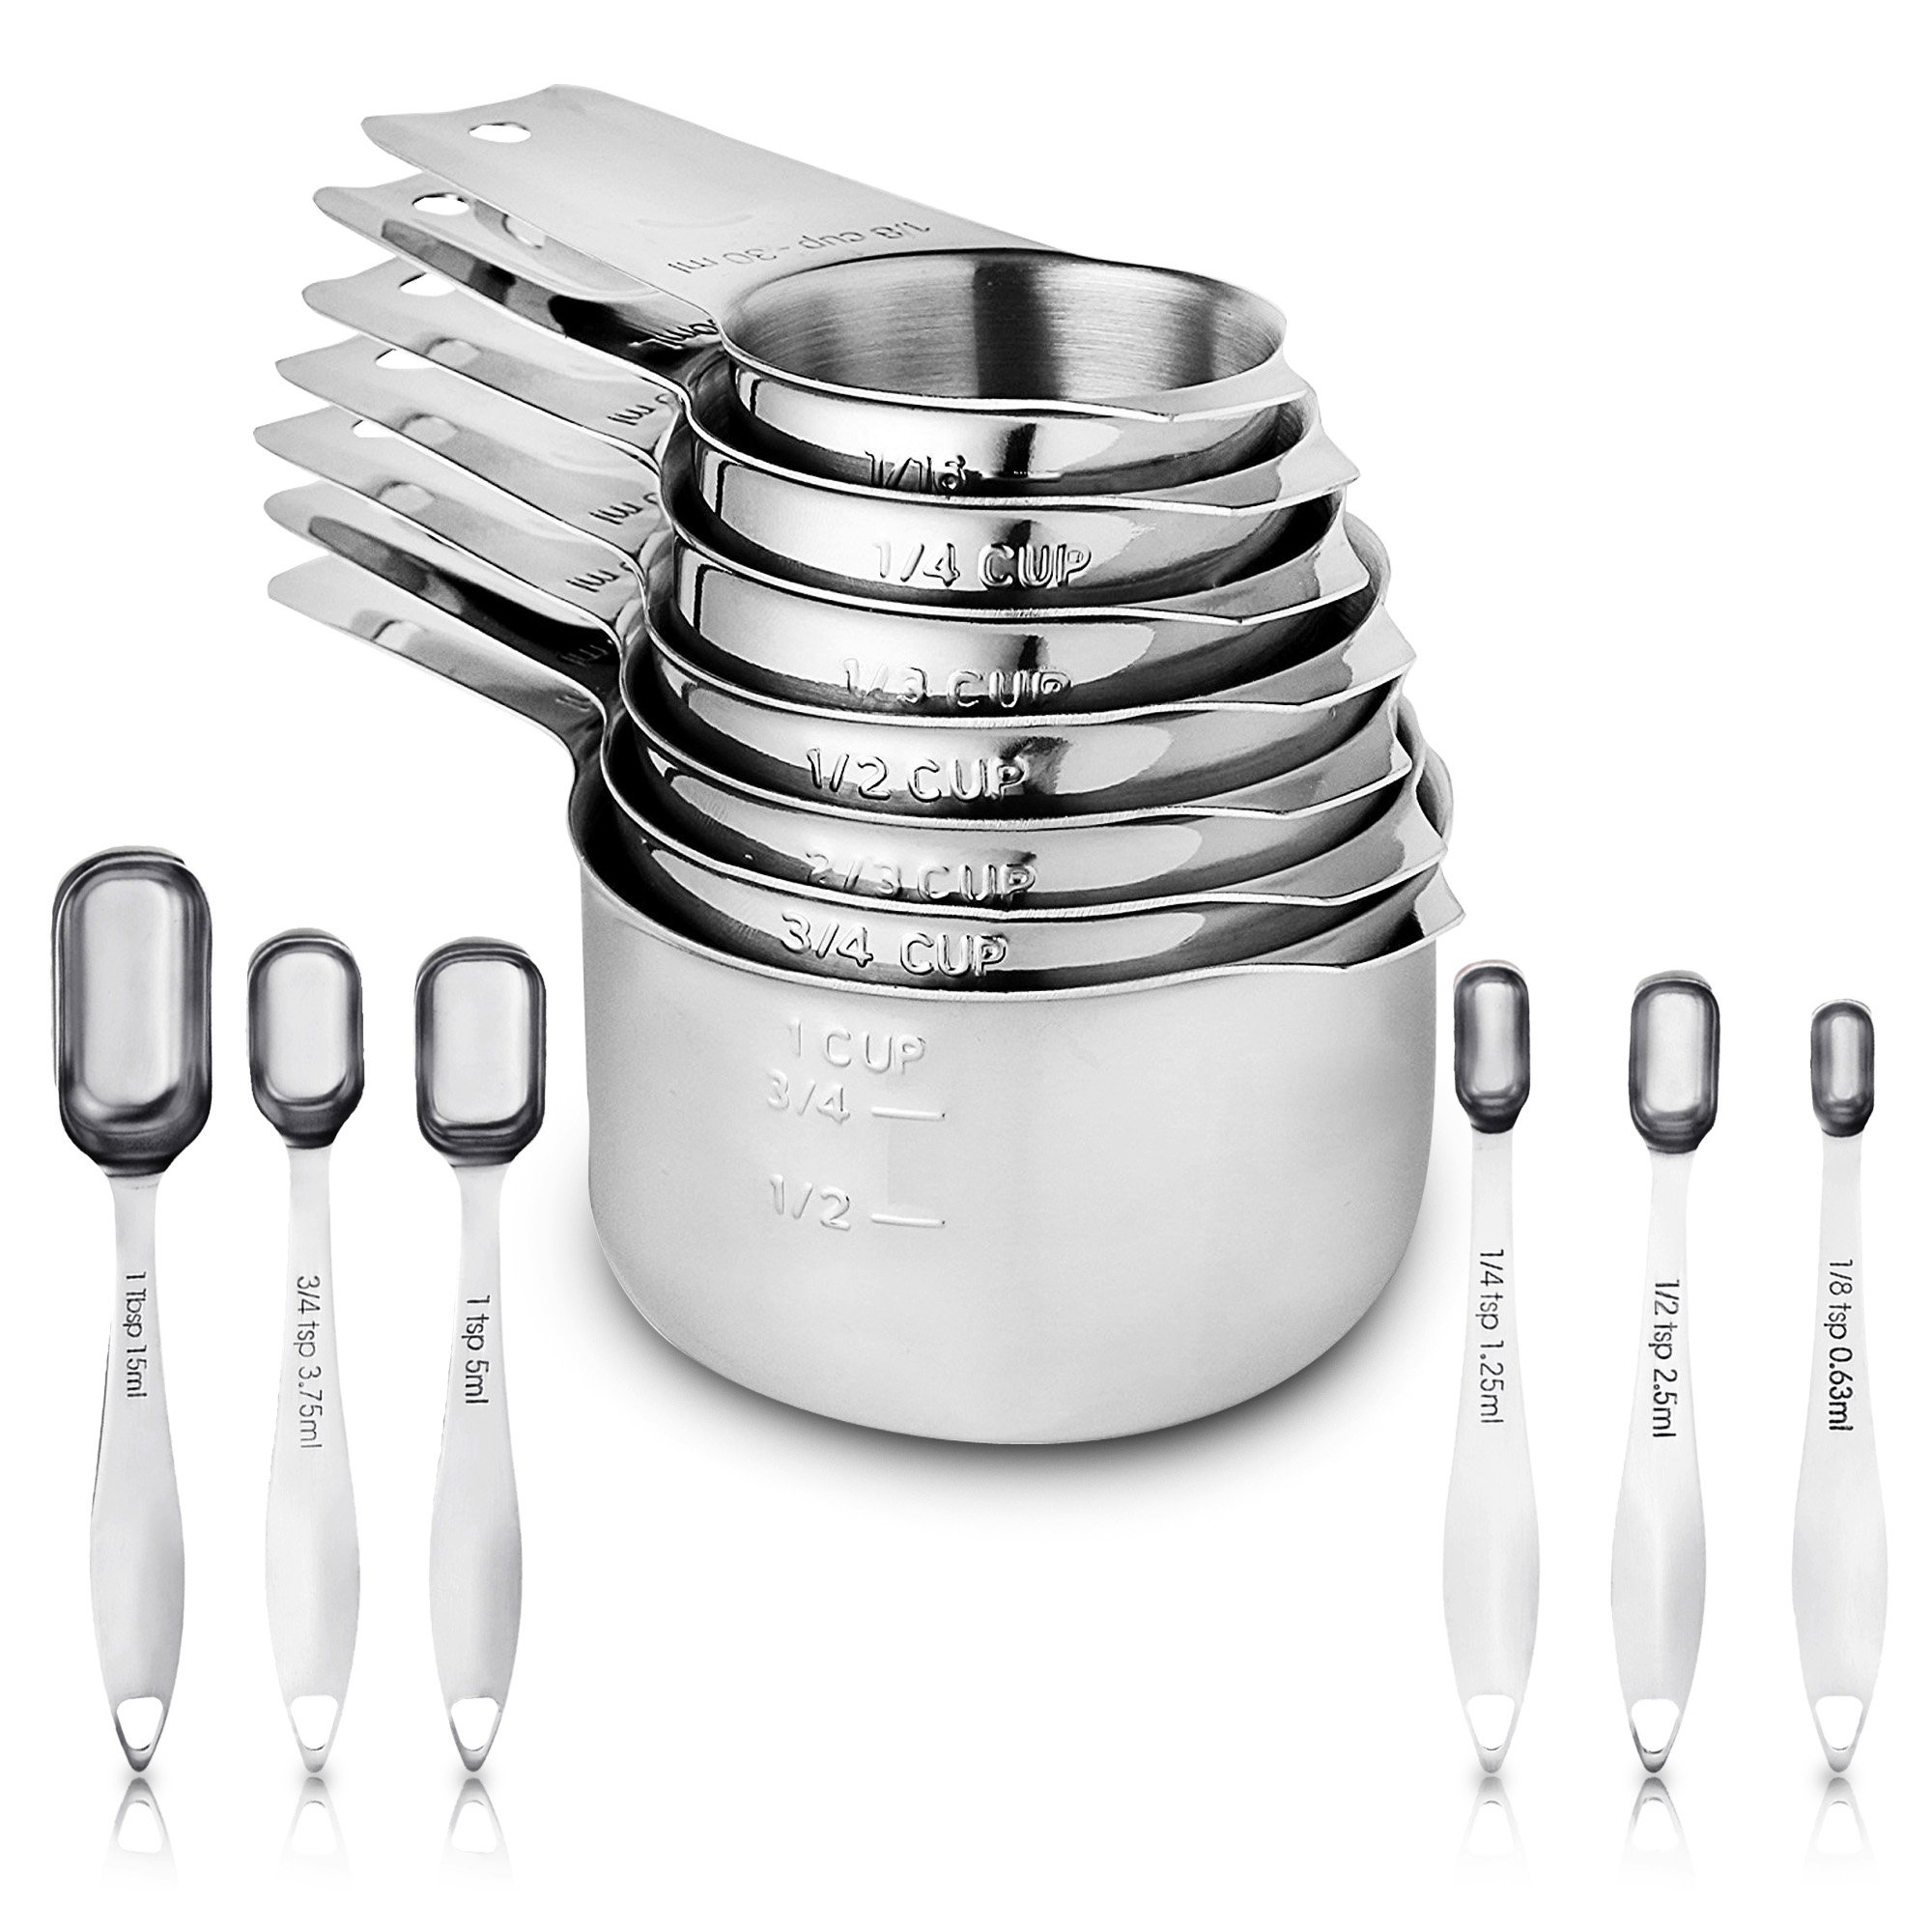 Chef Part Measuring cups and spoons set of 13- Stainless steel measuring cups and spoons-Heavy duty measuring cups- Metal measuring cup- Liquid or dry measuring cup- Narrow spoons fits in spice jars.